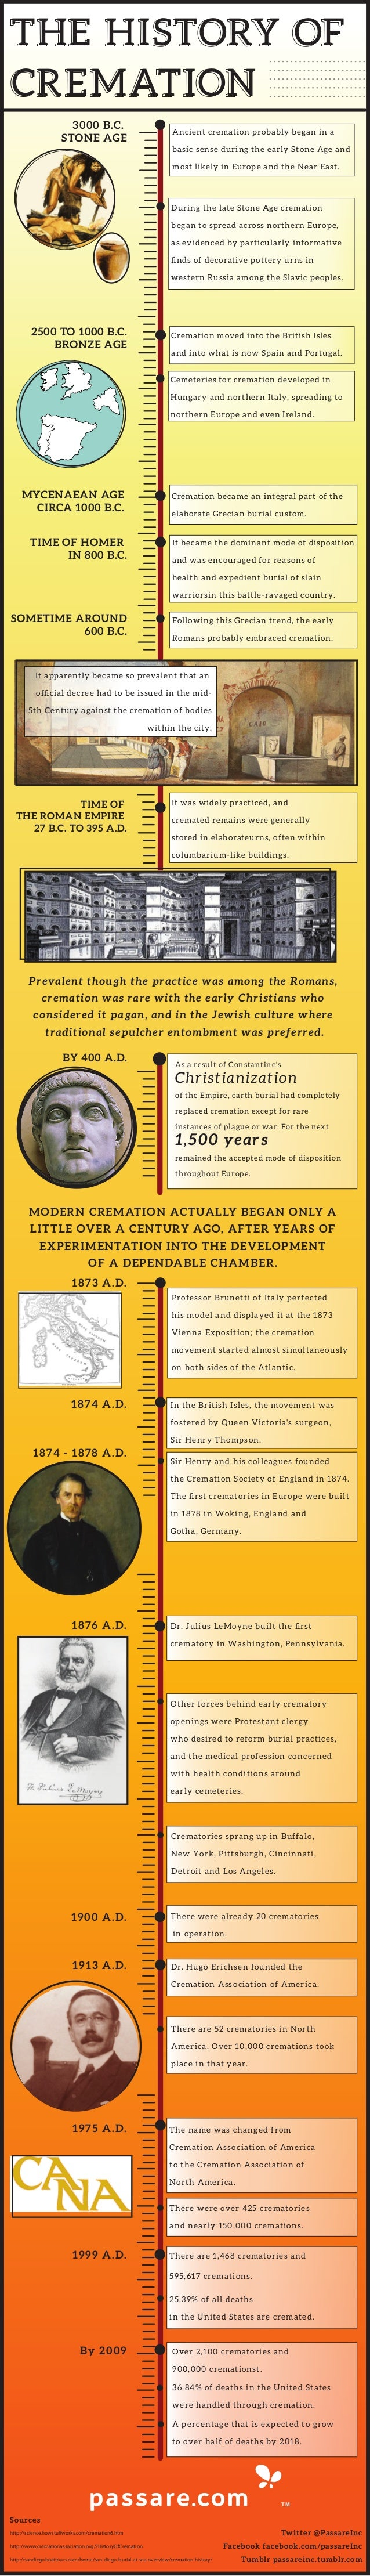 History of Cremation - Infographic